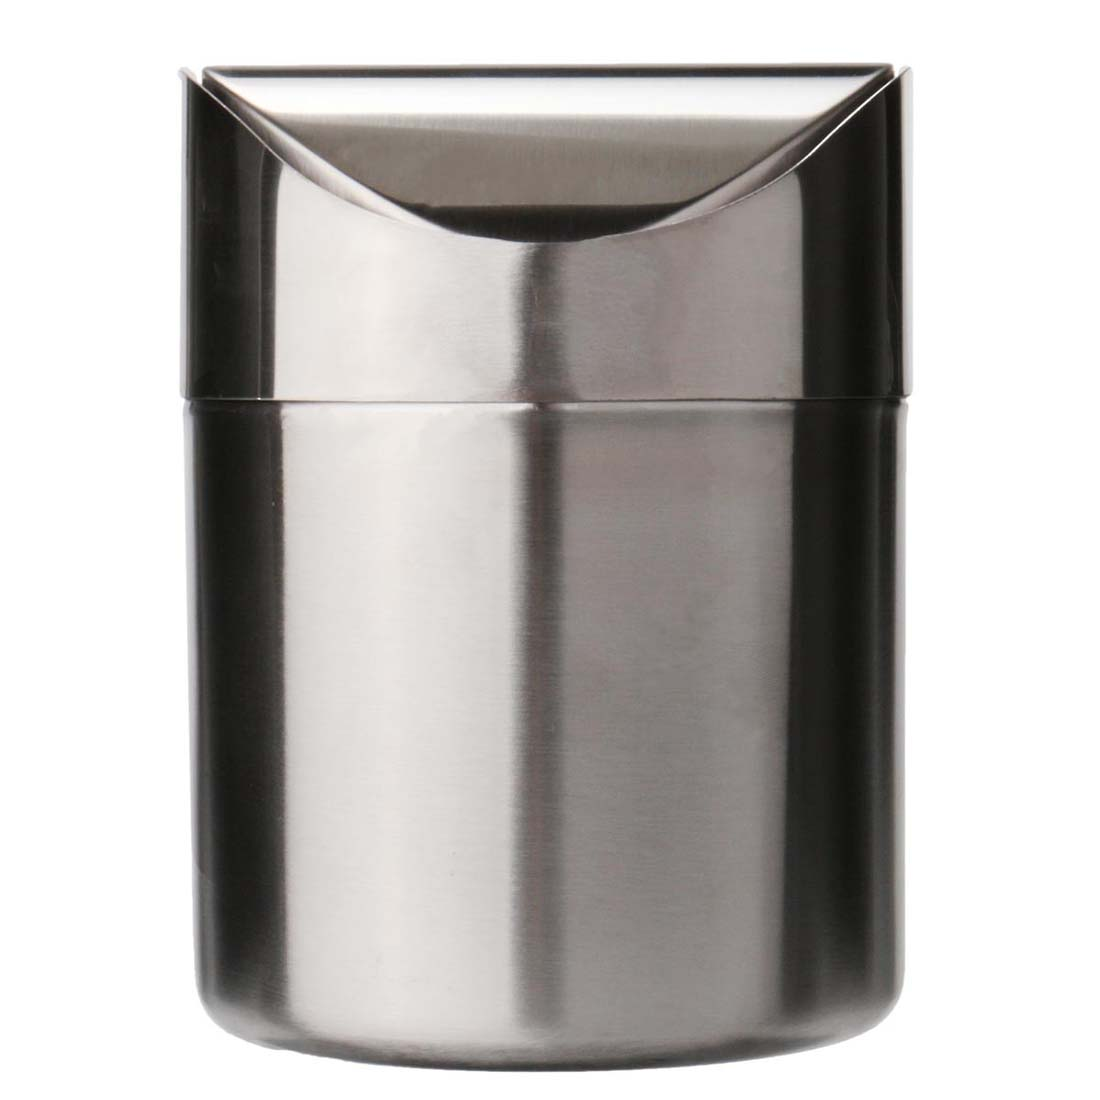 NOCM Hot Stainless Steel 1.5L Mini Worktop Kitchen Waste Dust Bin Rubbish With Swing Lid Silver ...